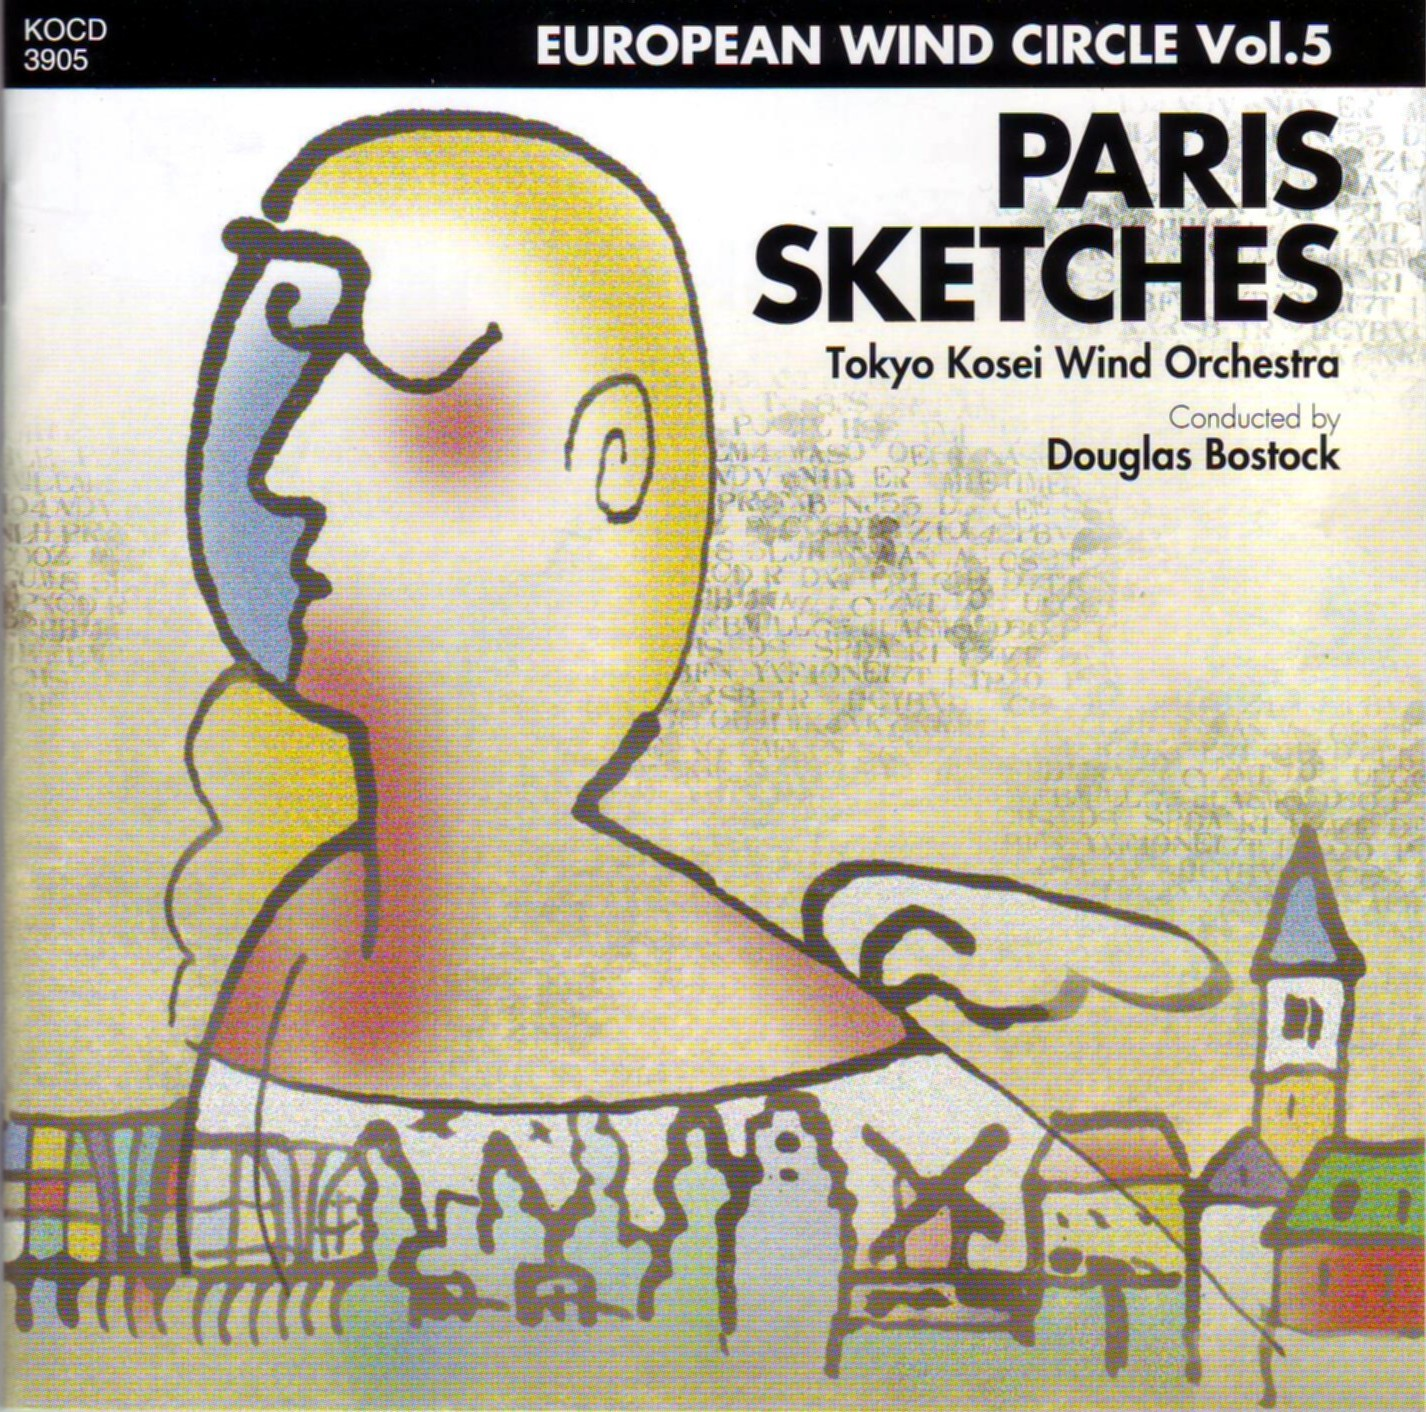 Paris Sketches - CD Cover.JPG